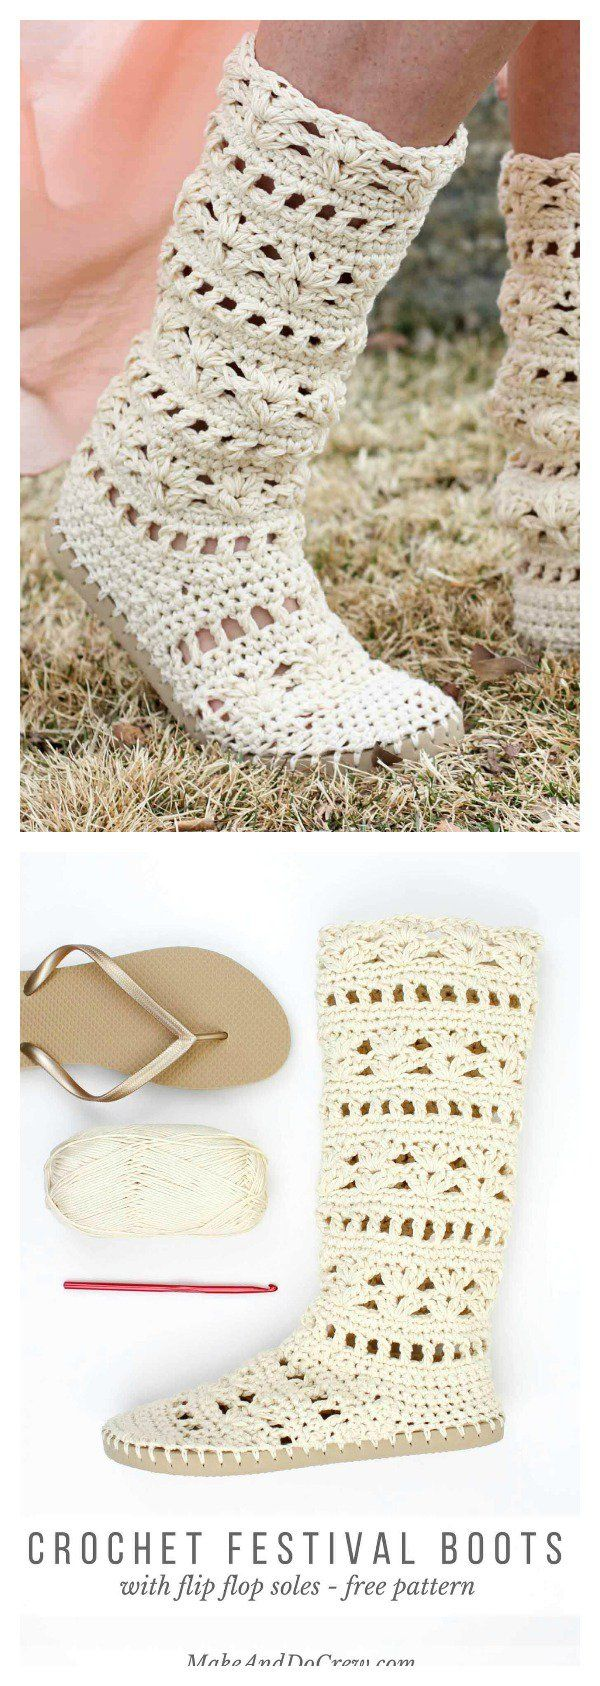 The 20 best images about Pantunfl on Pinterest | Crochet sandals ...